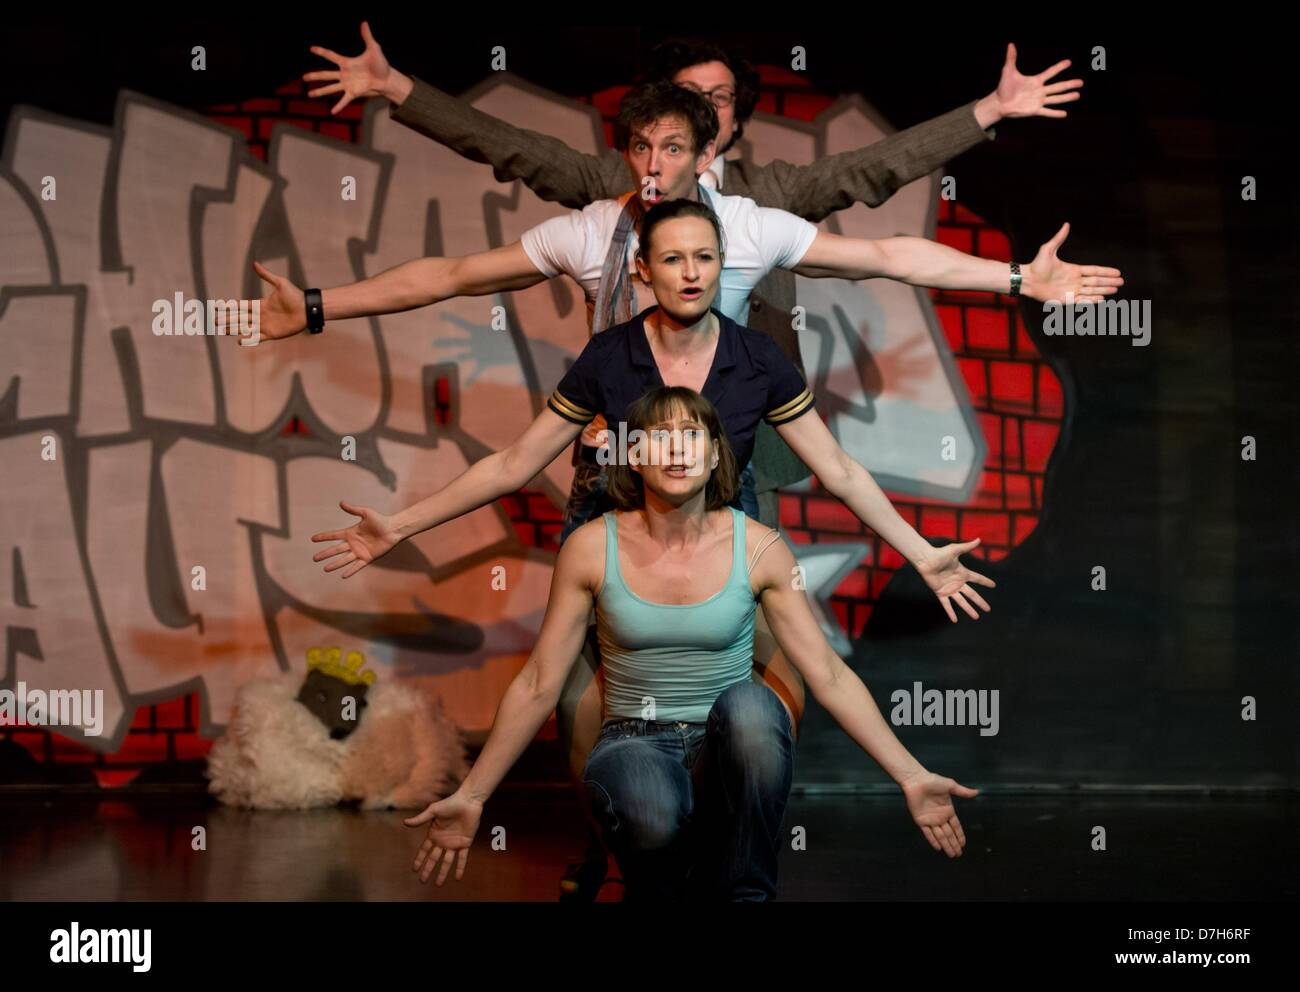 Berlin, Germany. 7th May 2013. Actors (front-back) Inka Pabst, Susanne Theil, Gideon Rapp and Mattis Nolte perform - Stock Image